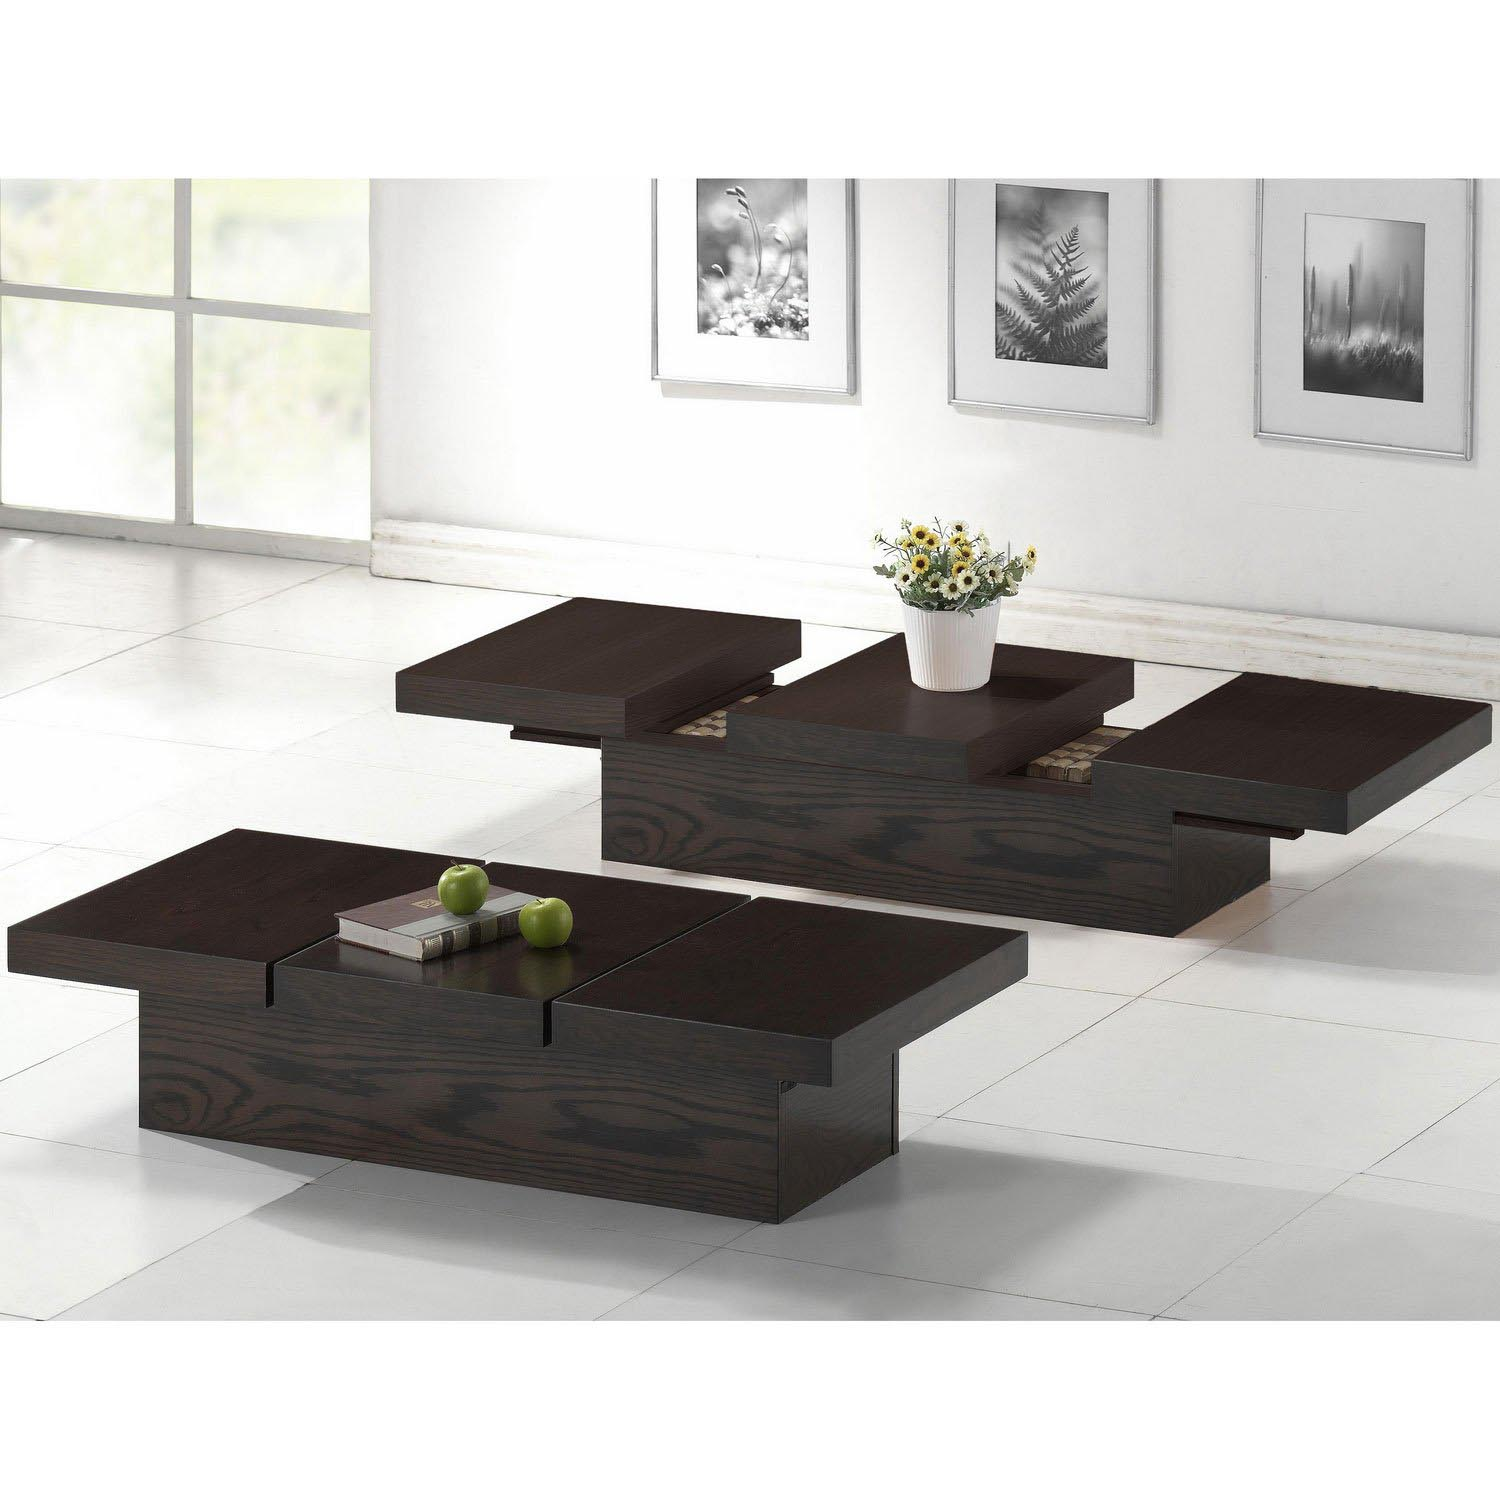 cool coffee tables with storage coffee table design ideas. Black Bedroom Furniture Sets. Home Design Ideas